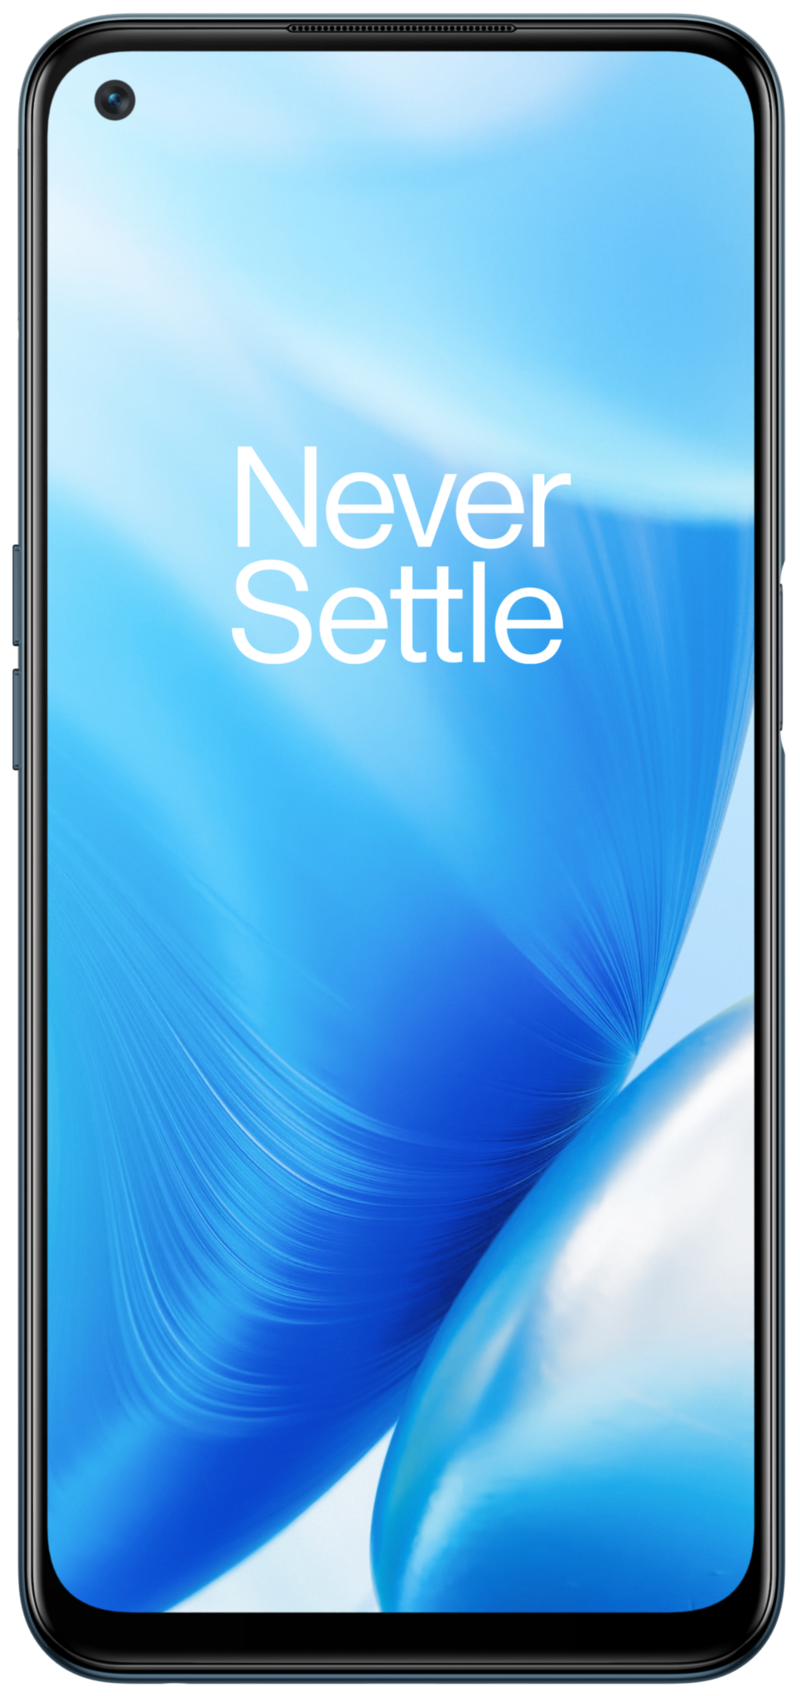 oneplus-nord-n200-5g-render-front.png